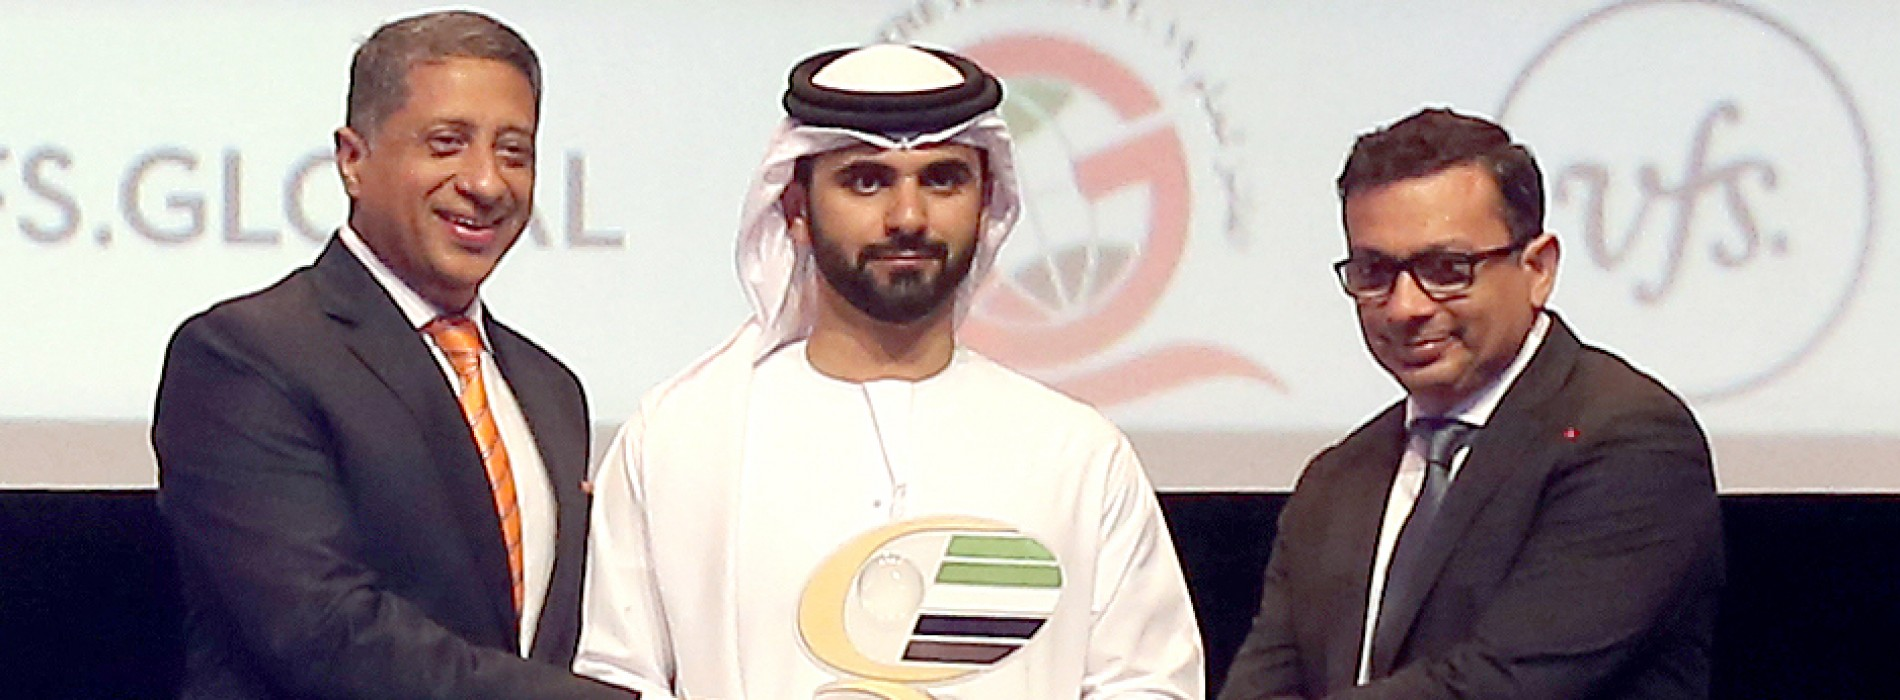 VFS Global wins the coveted Dubai Quality Global Award (DQGA)